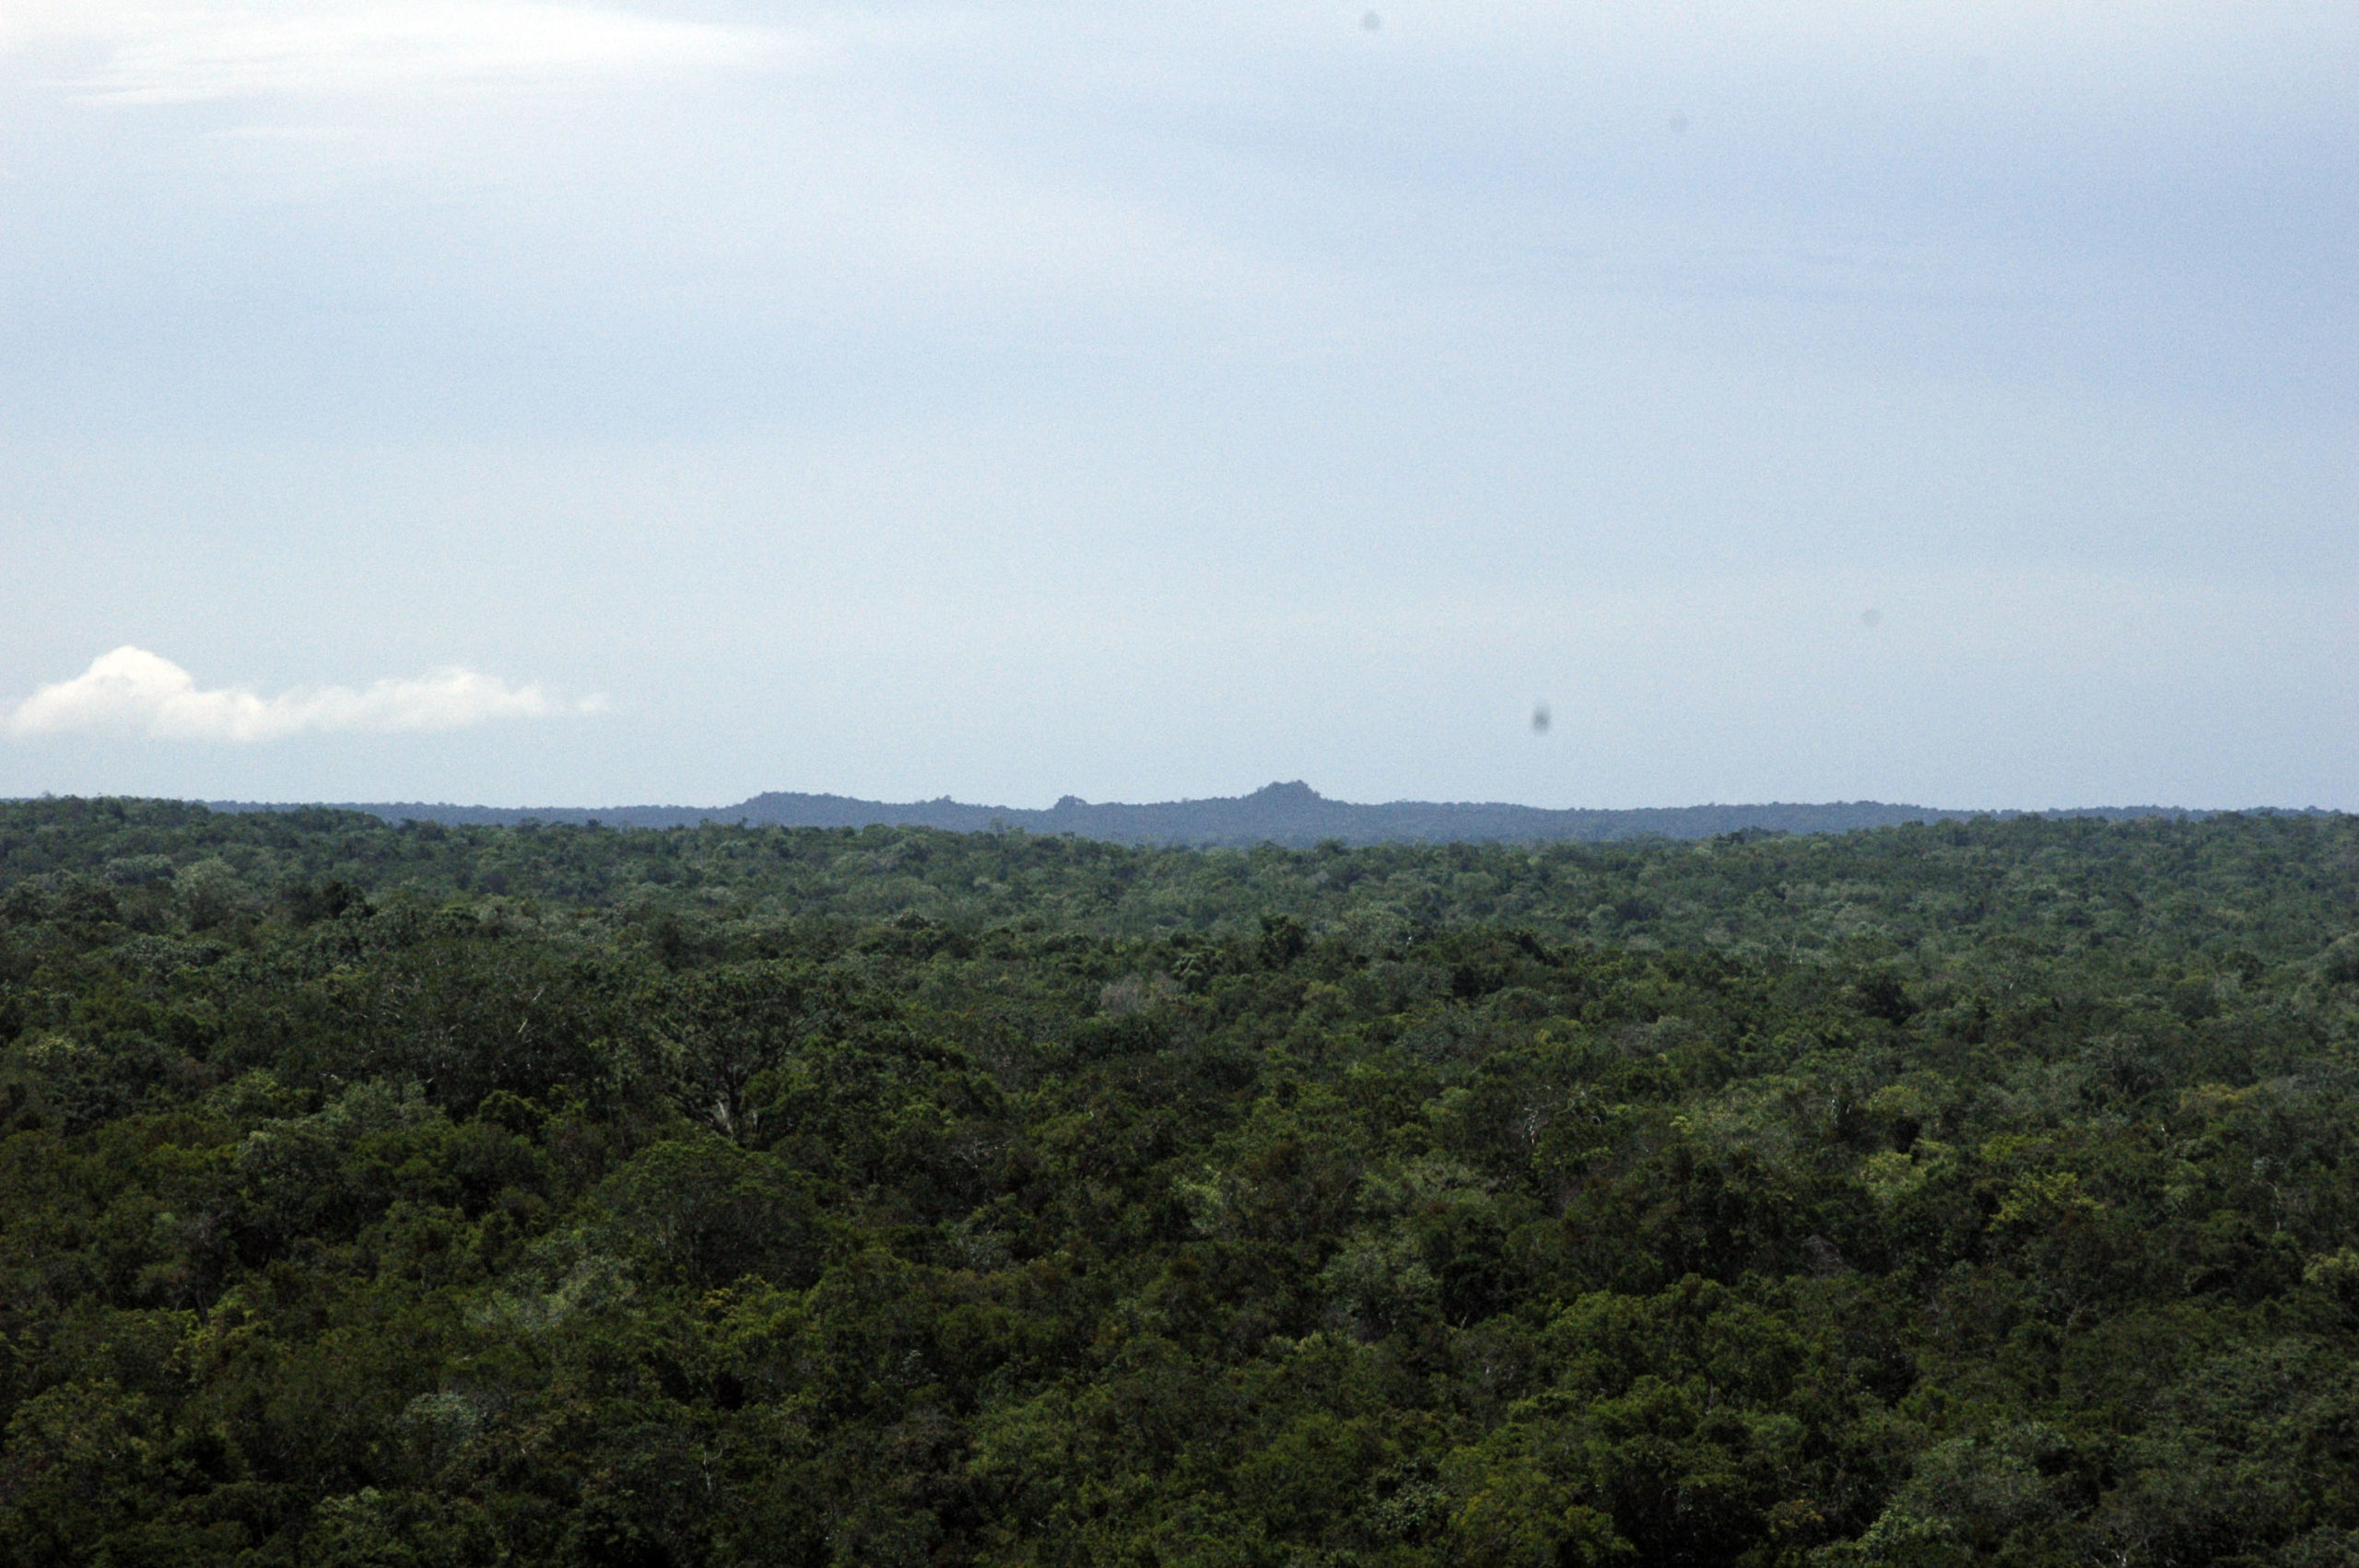 The photograph shows the green dense forest surrounding the Preclassic site of Nakbé which can be seen in the horizon from El Mirador's La Danta pyramid.